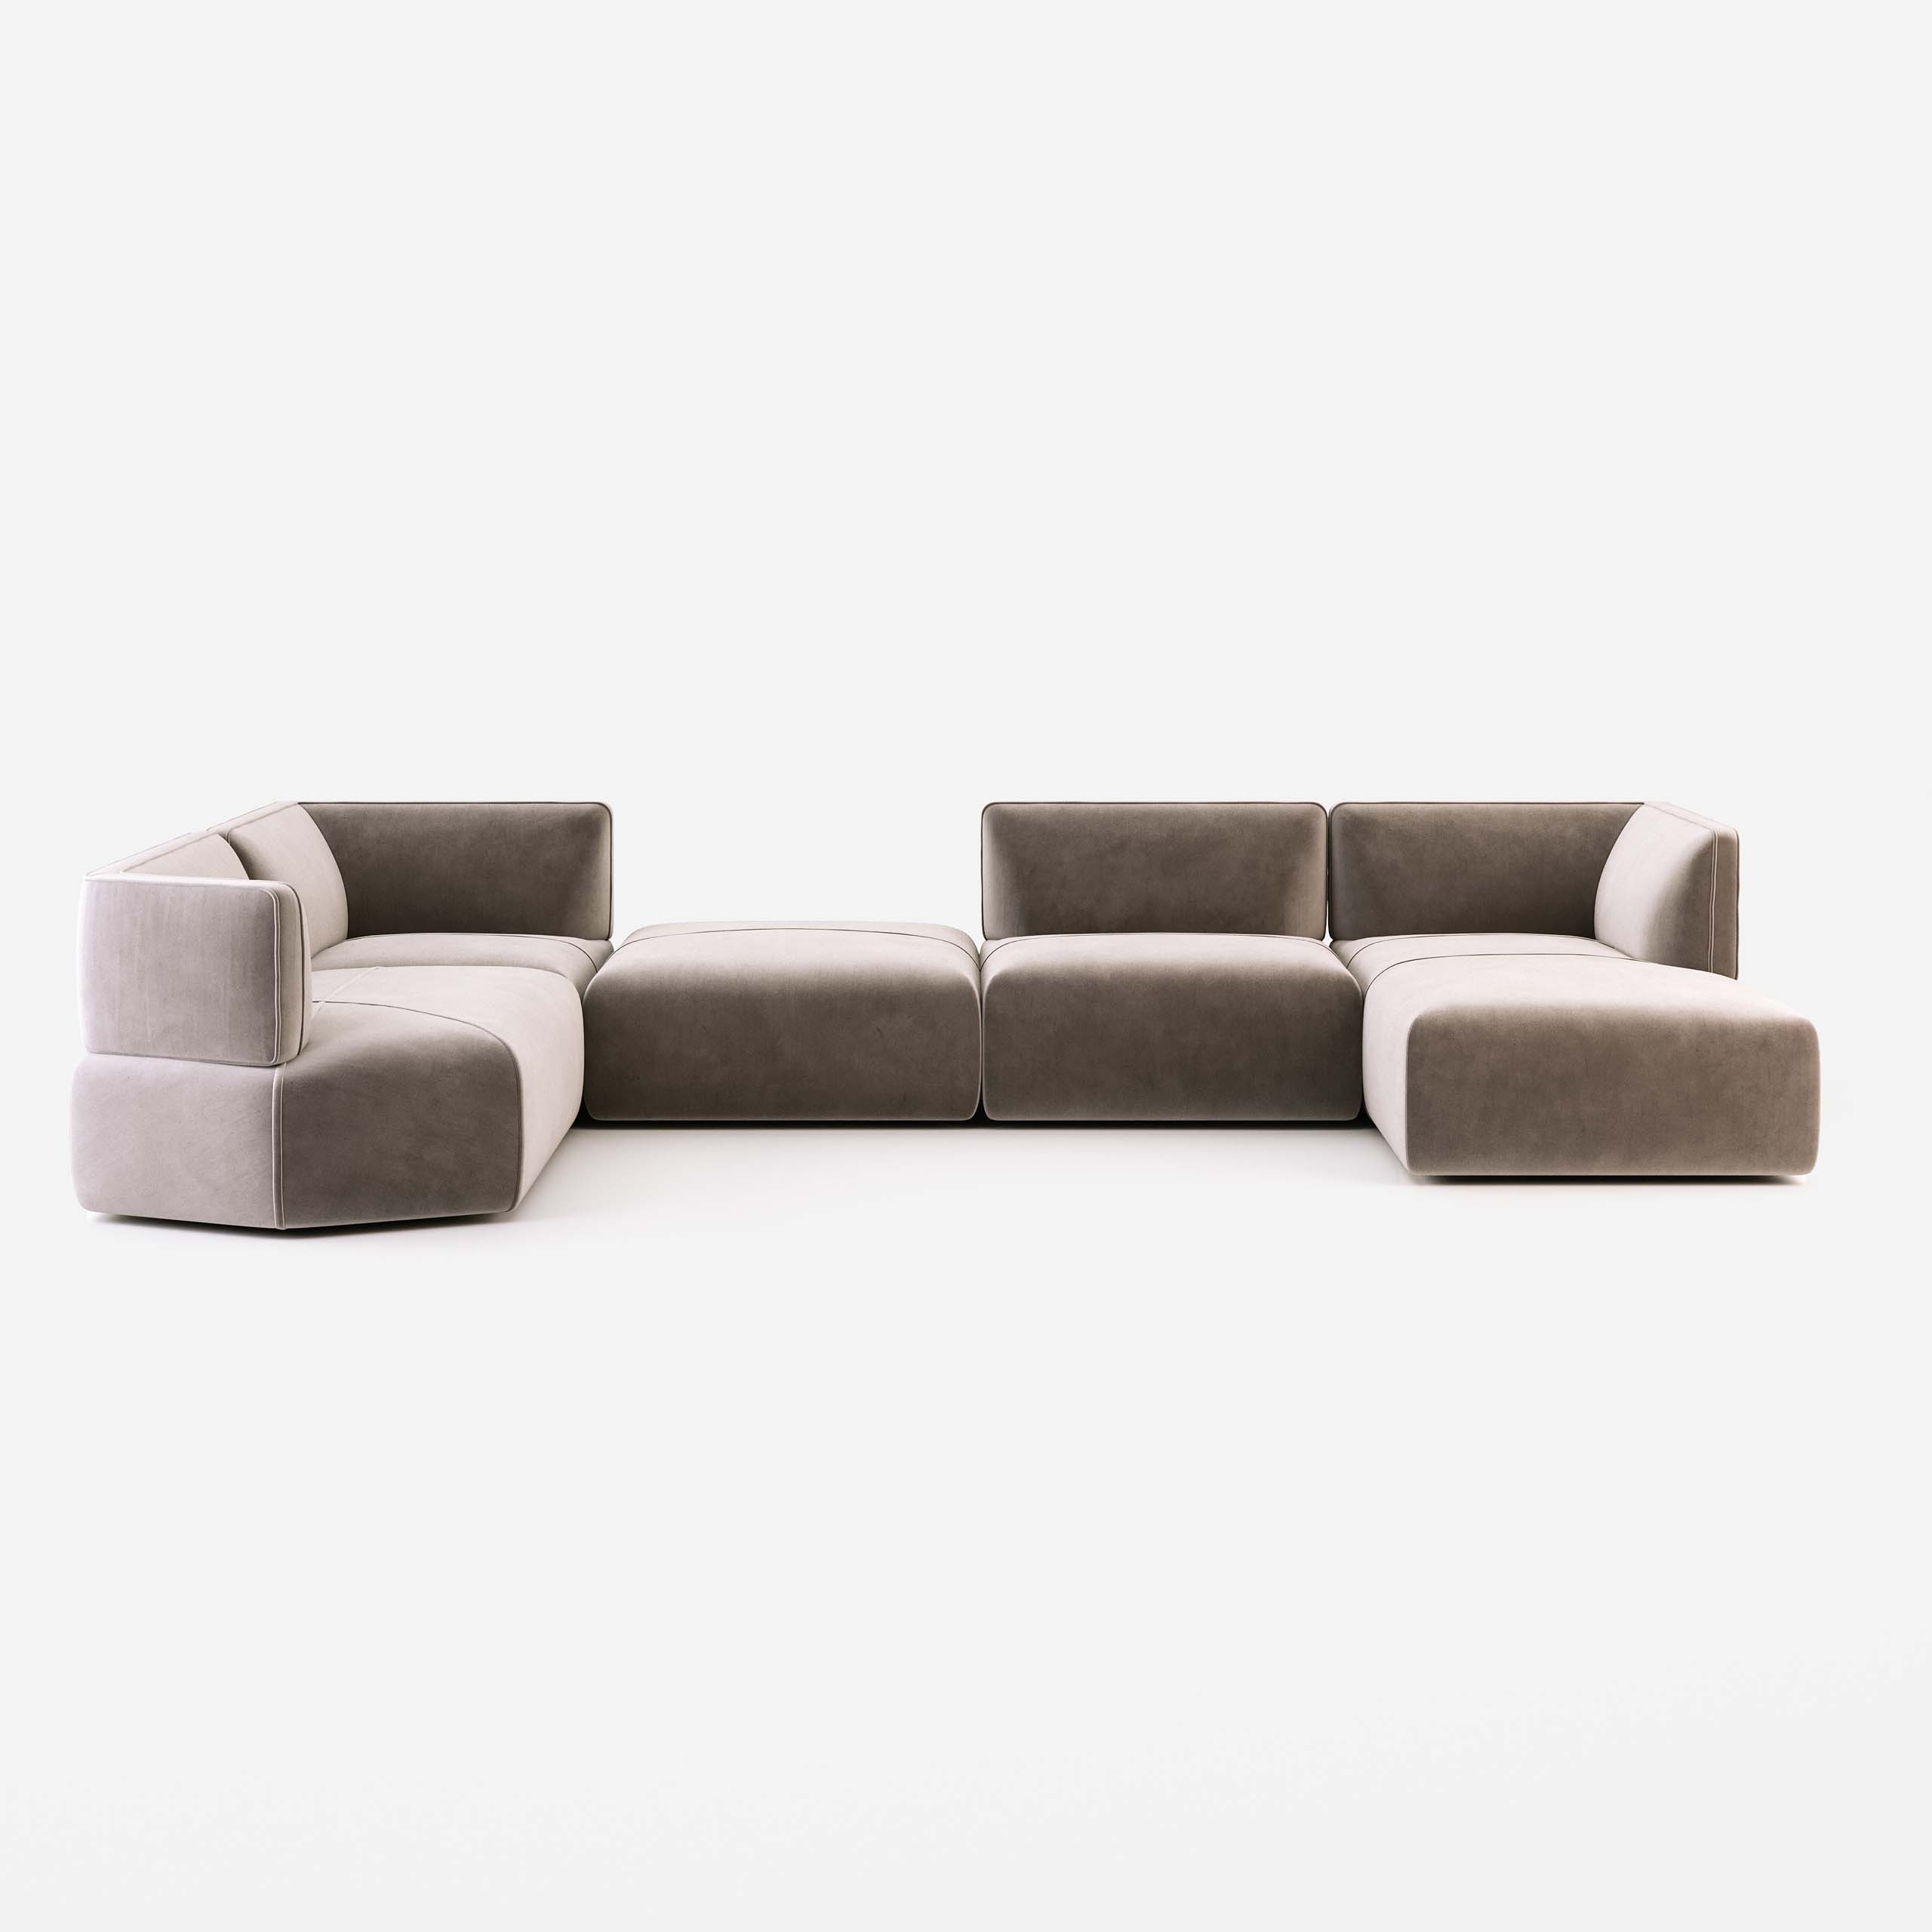 disruption-sofa-domkapa-living-room-decor-new-collection-2021